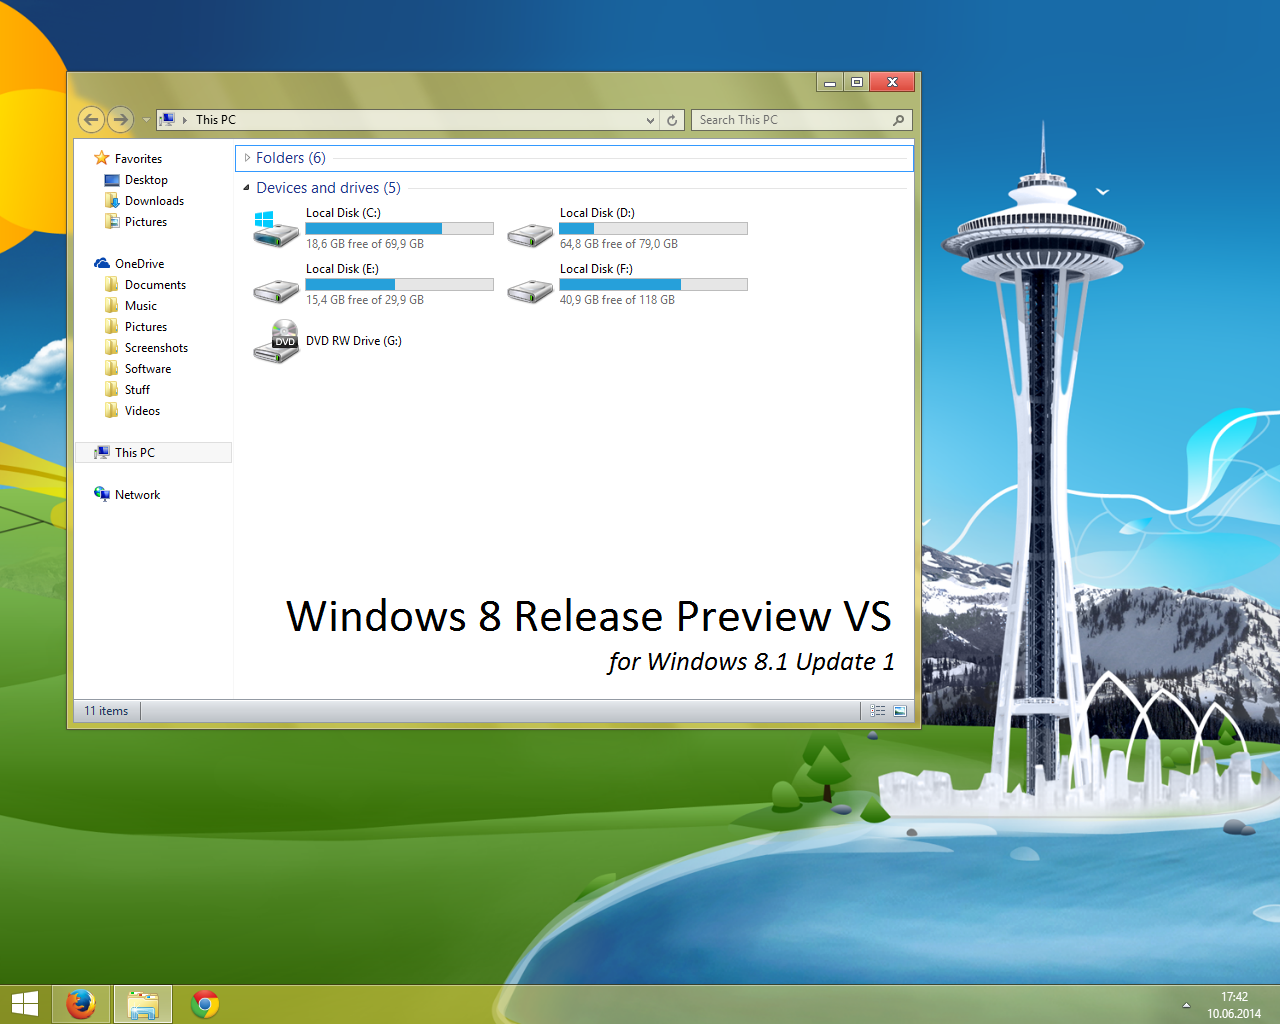 Windows 8 Wallpapers Release: Windows 8 Release Preview VS For Windows 8.1.1 By